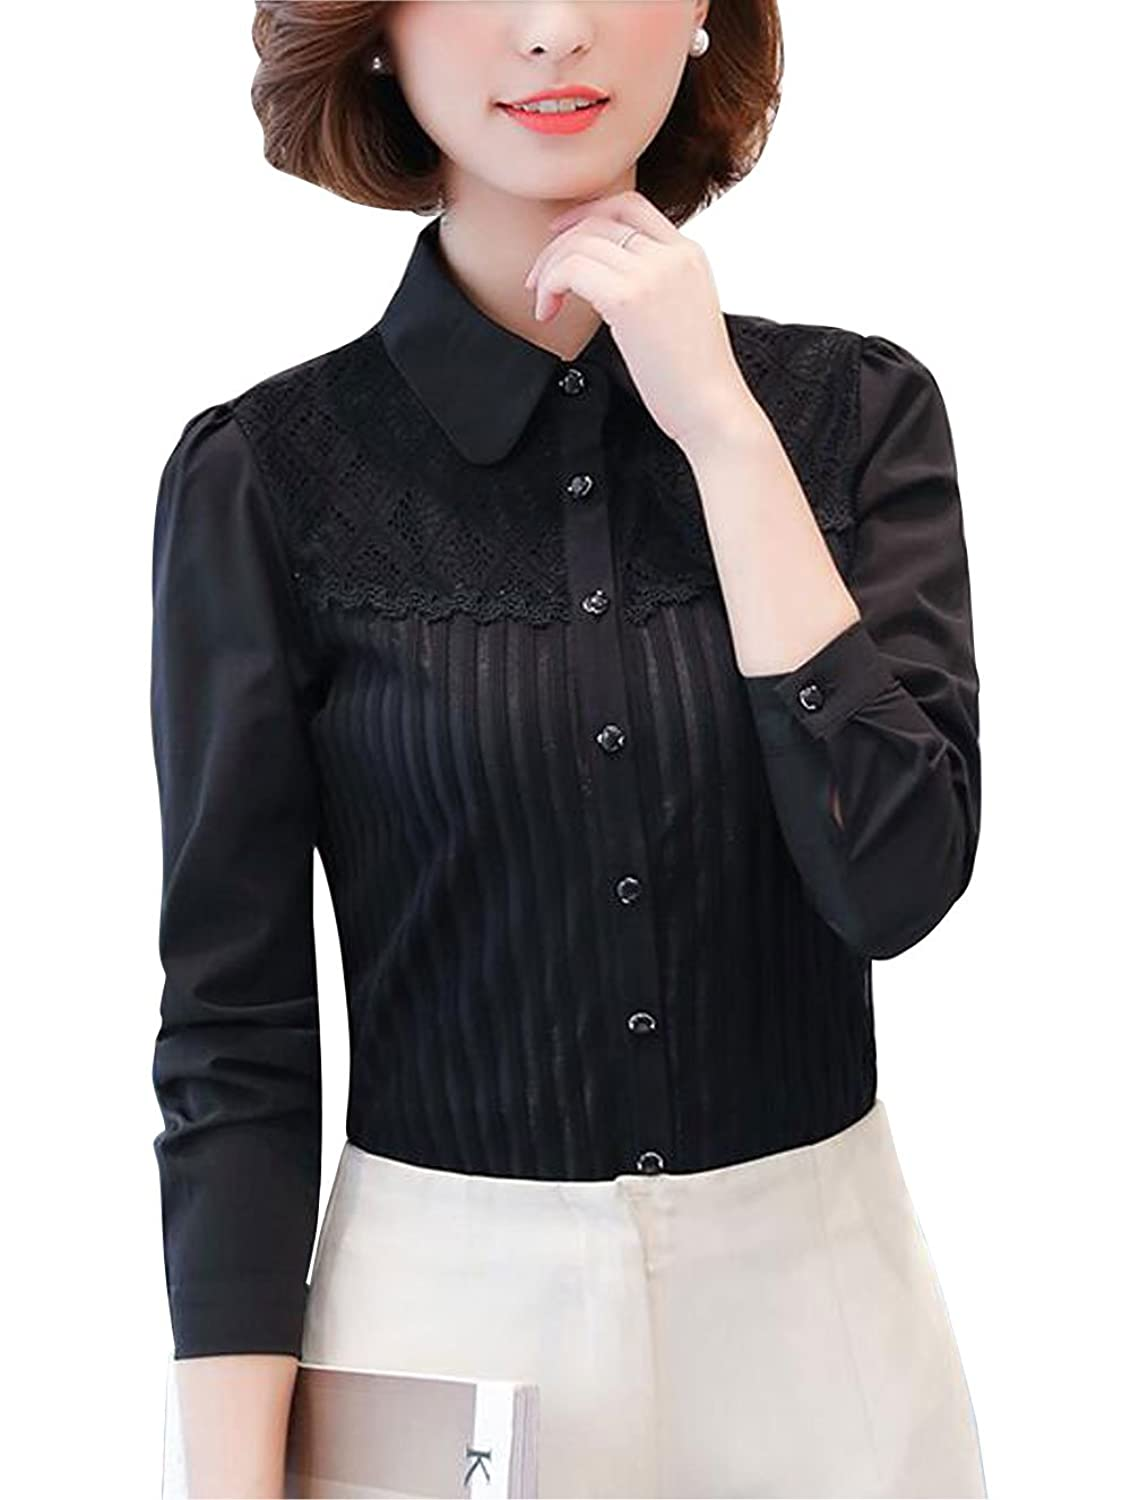 Steampunk Plus Size Clothing & Costumes Double Plus Open DPO Womens Vintage Collared Pleated Button Down Shirt Long Sleeve Lace Stretchy Blouse $23.59 AT vintagedancer.com